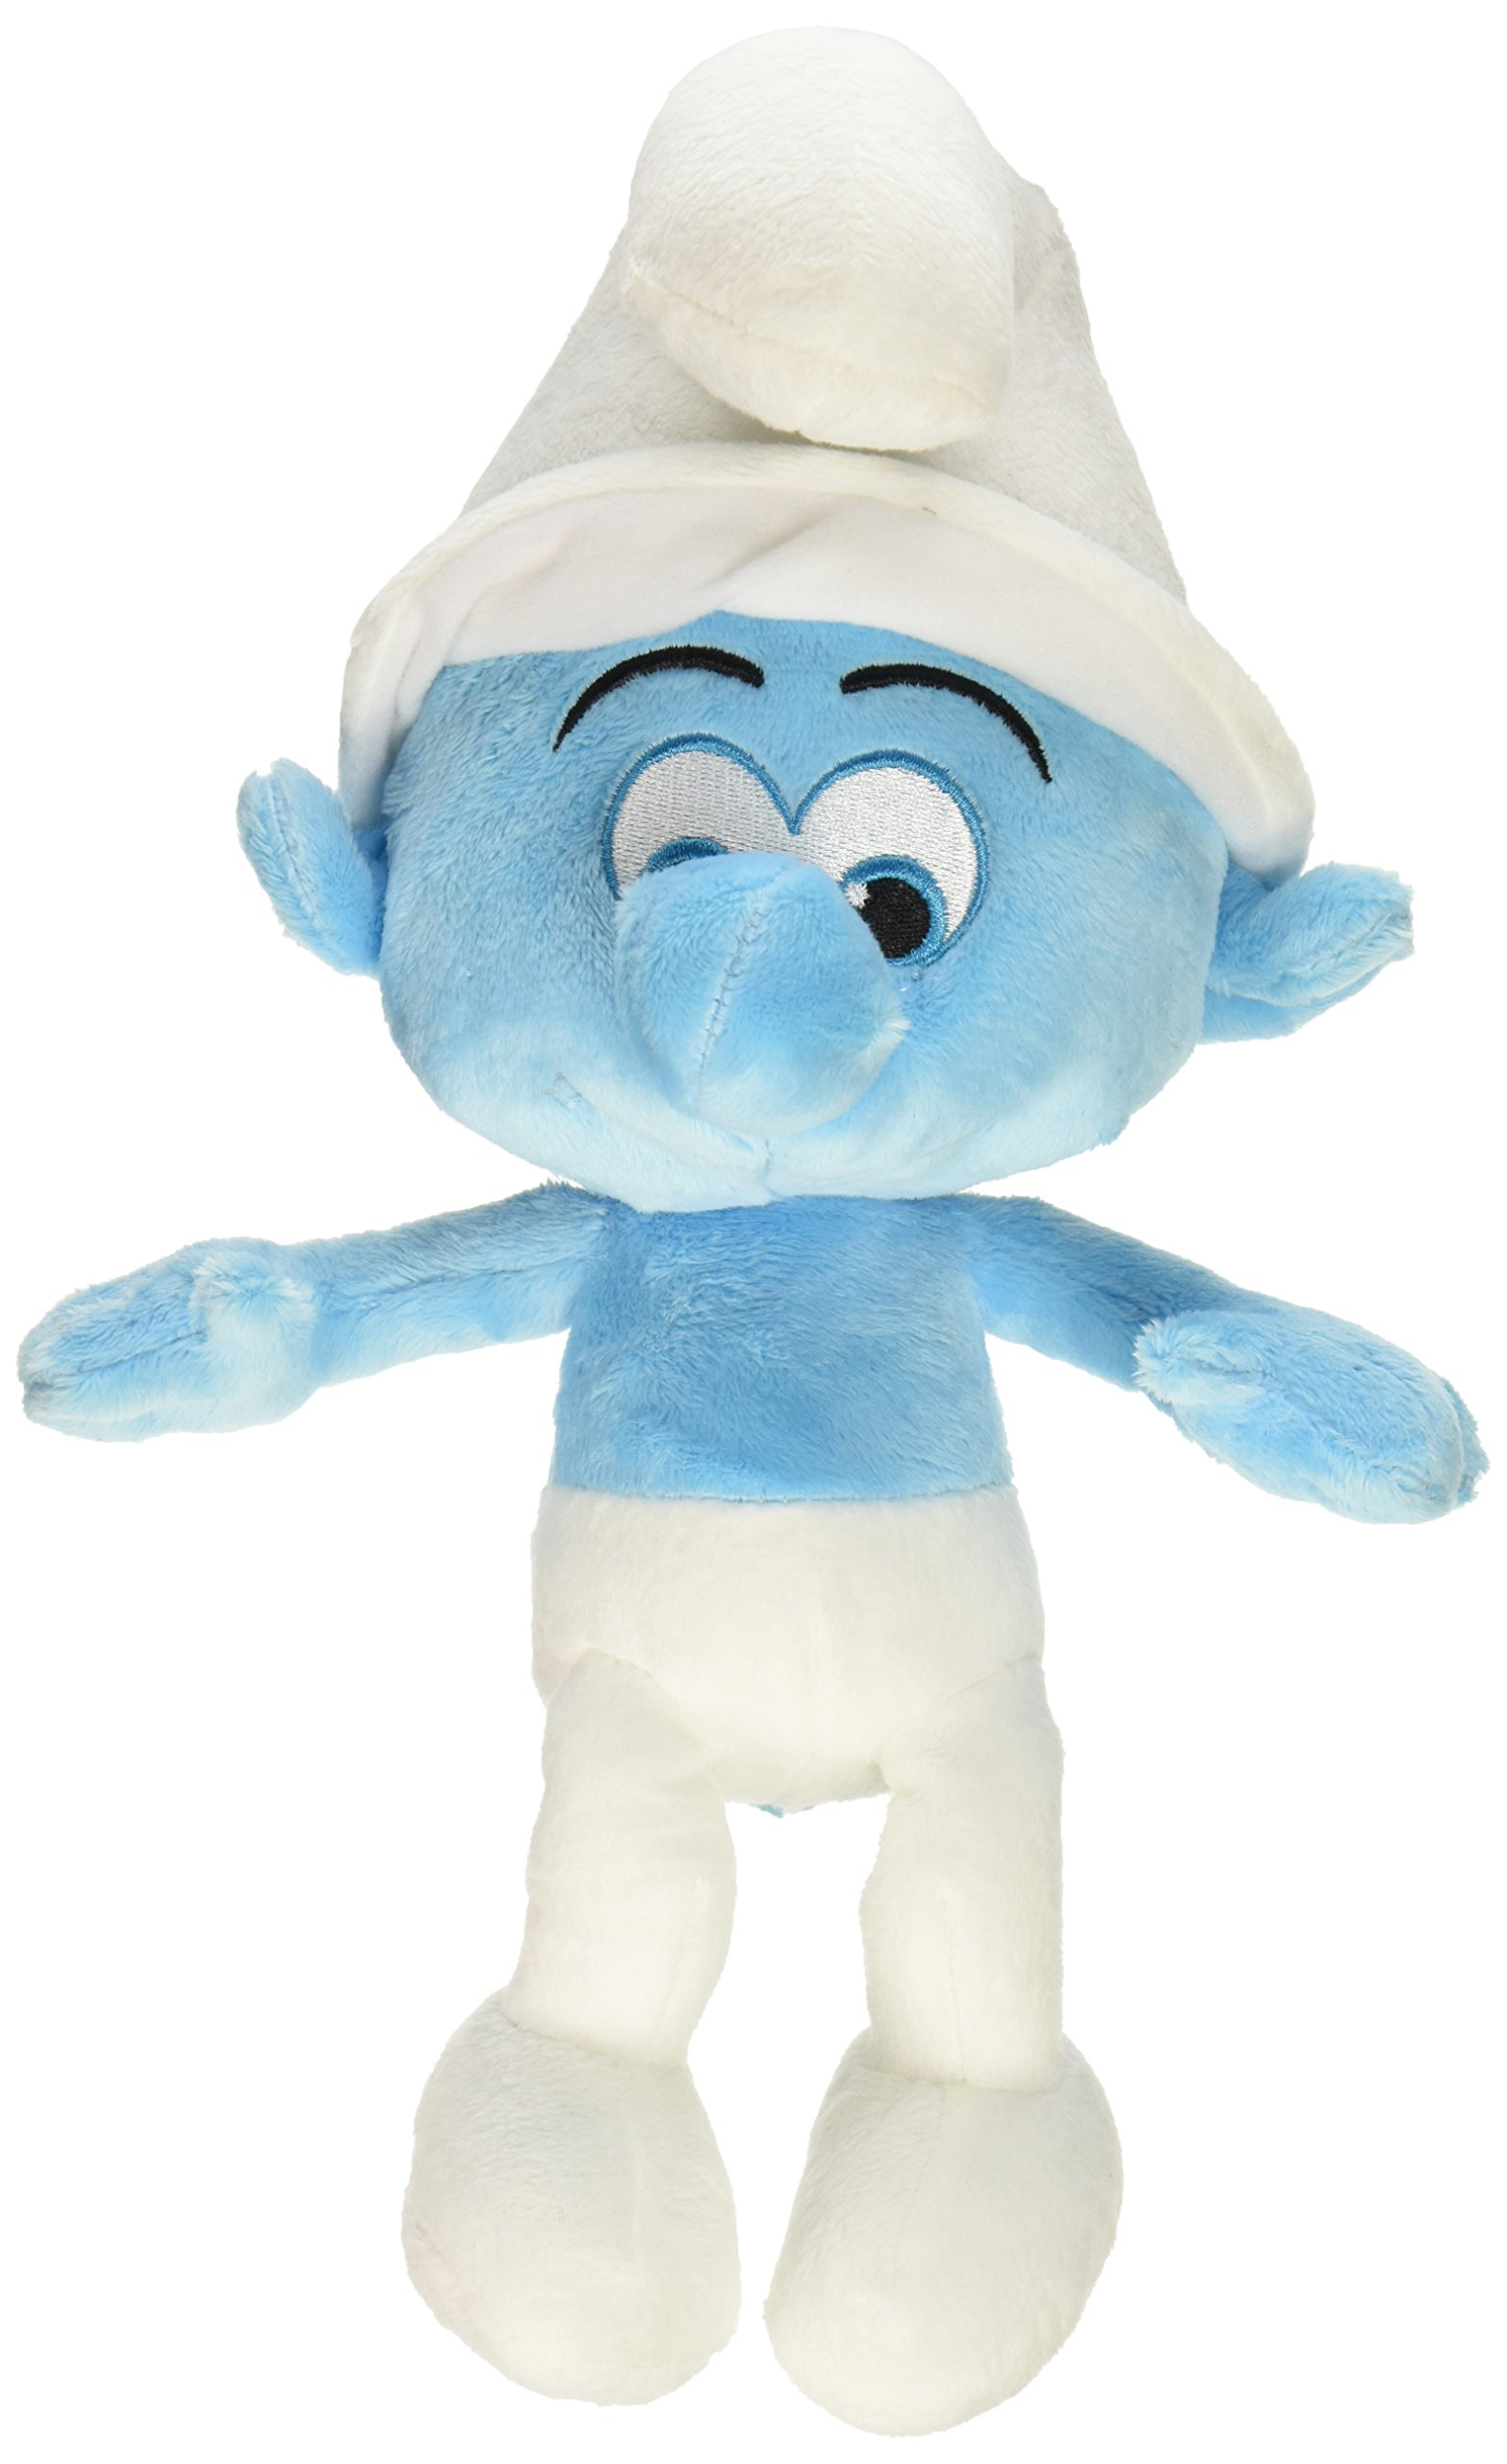 Smurfs The Lost Village Clumsy Talking Feature Plush by The Smurfs